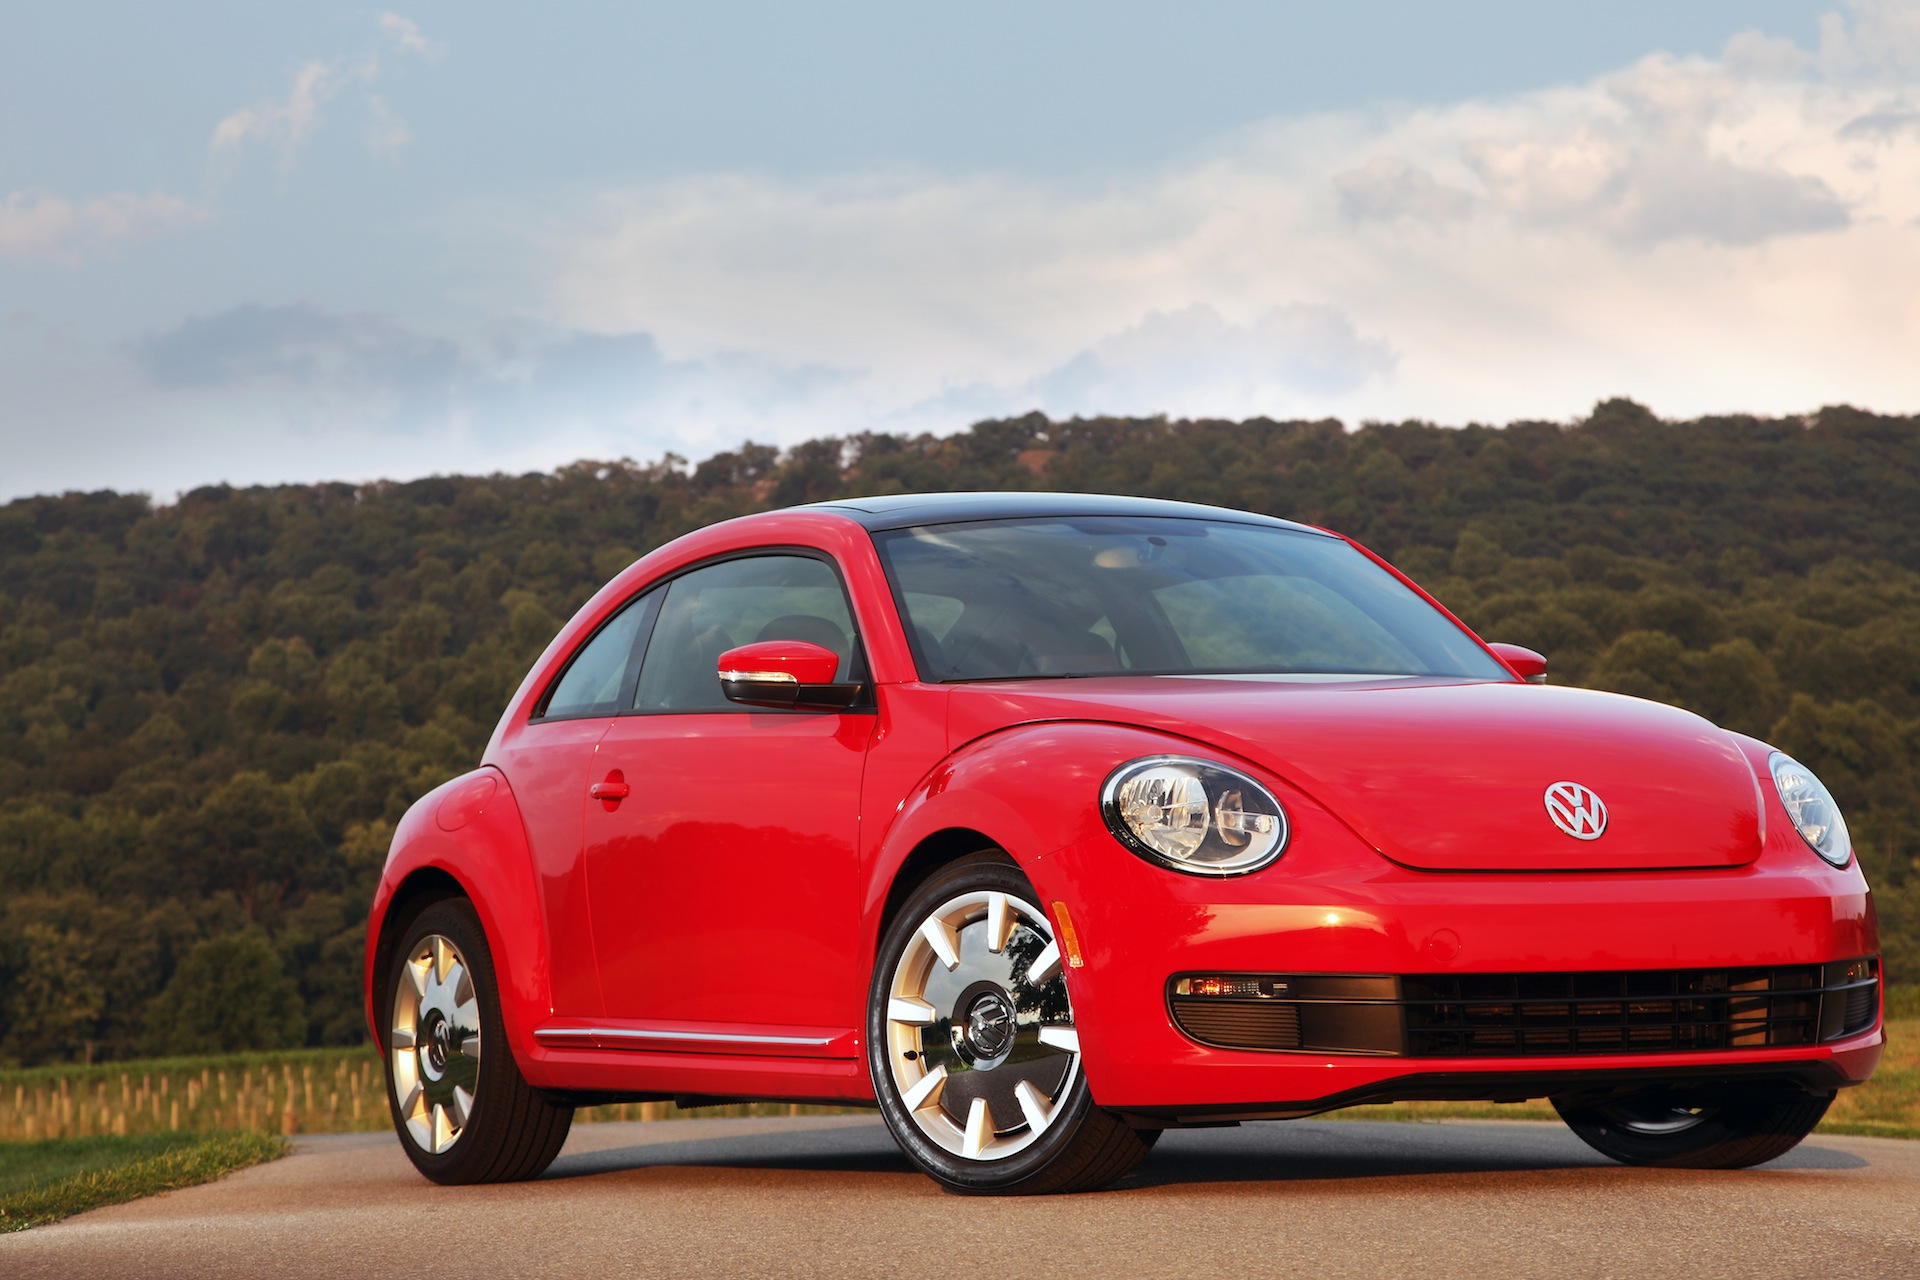 l test volkswagen driving car beetle review rapha created reviews road convertible with